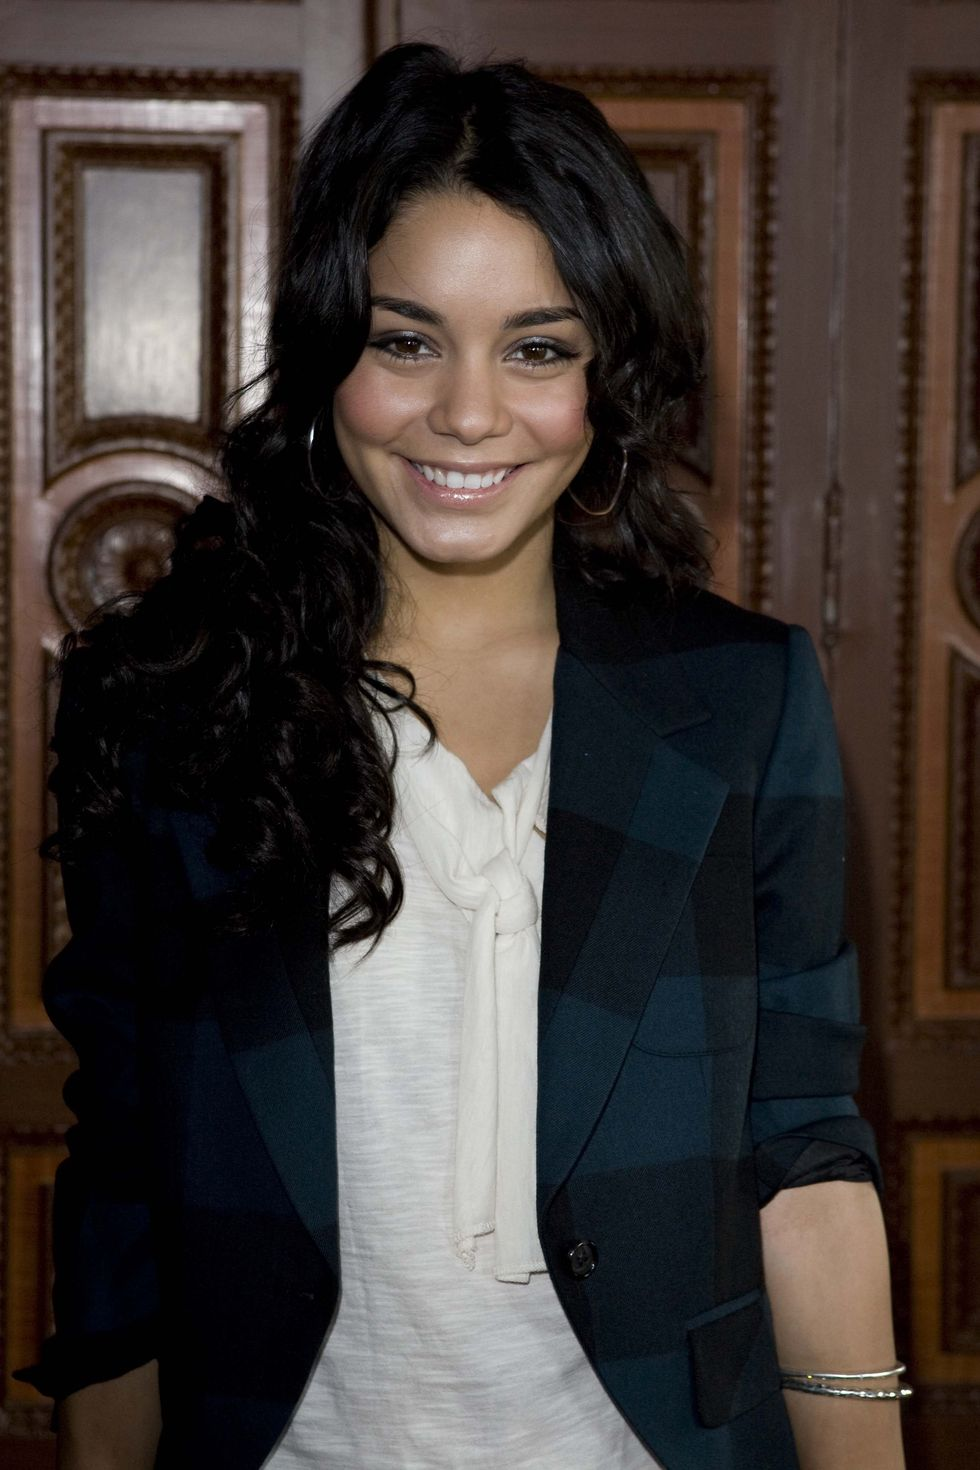 vanessa-hudgens-high-school-musical-3-premiere-in-stockholm-01